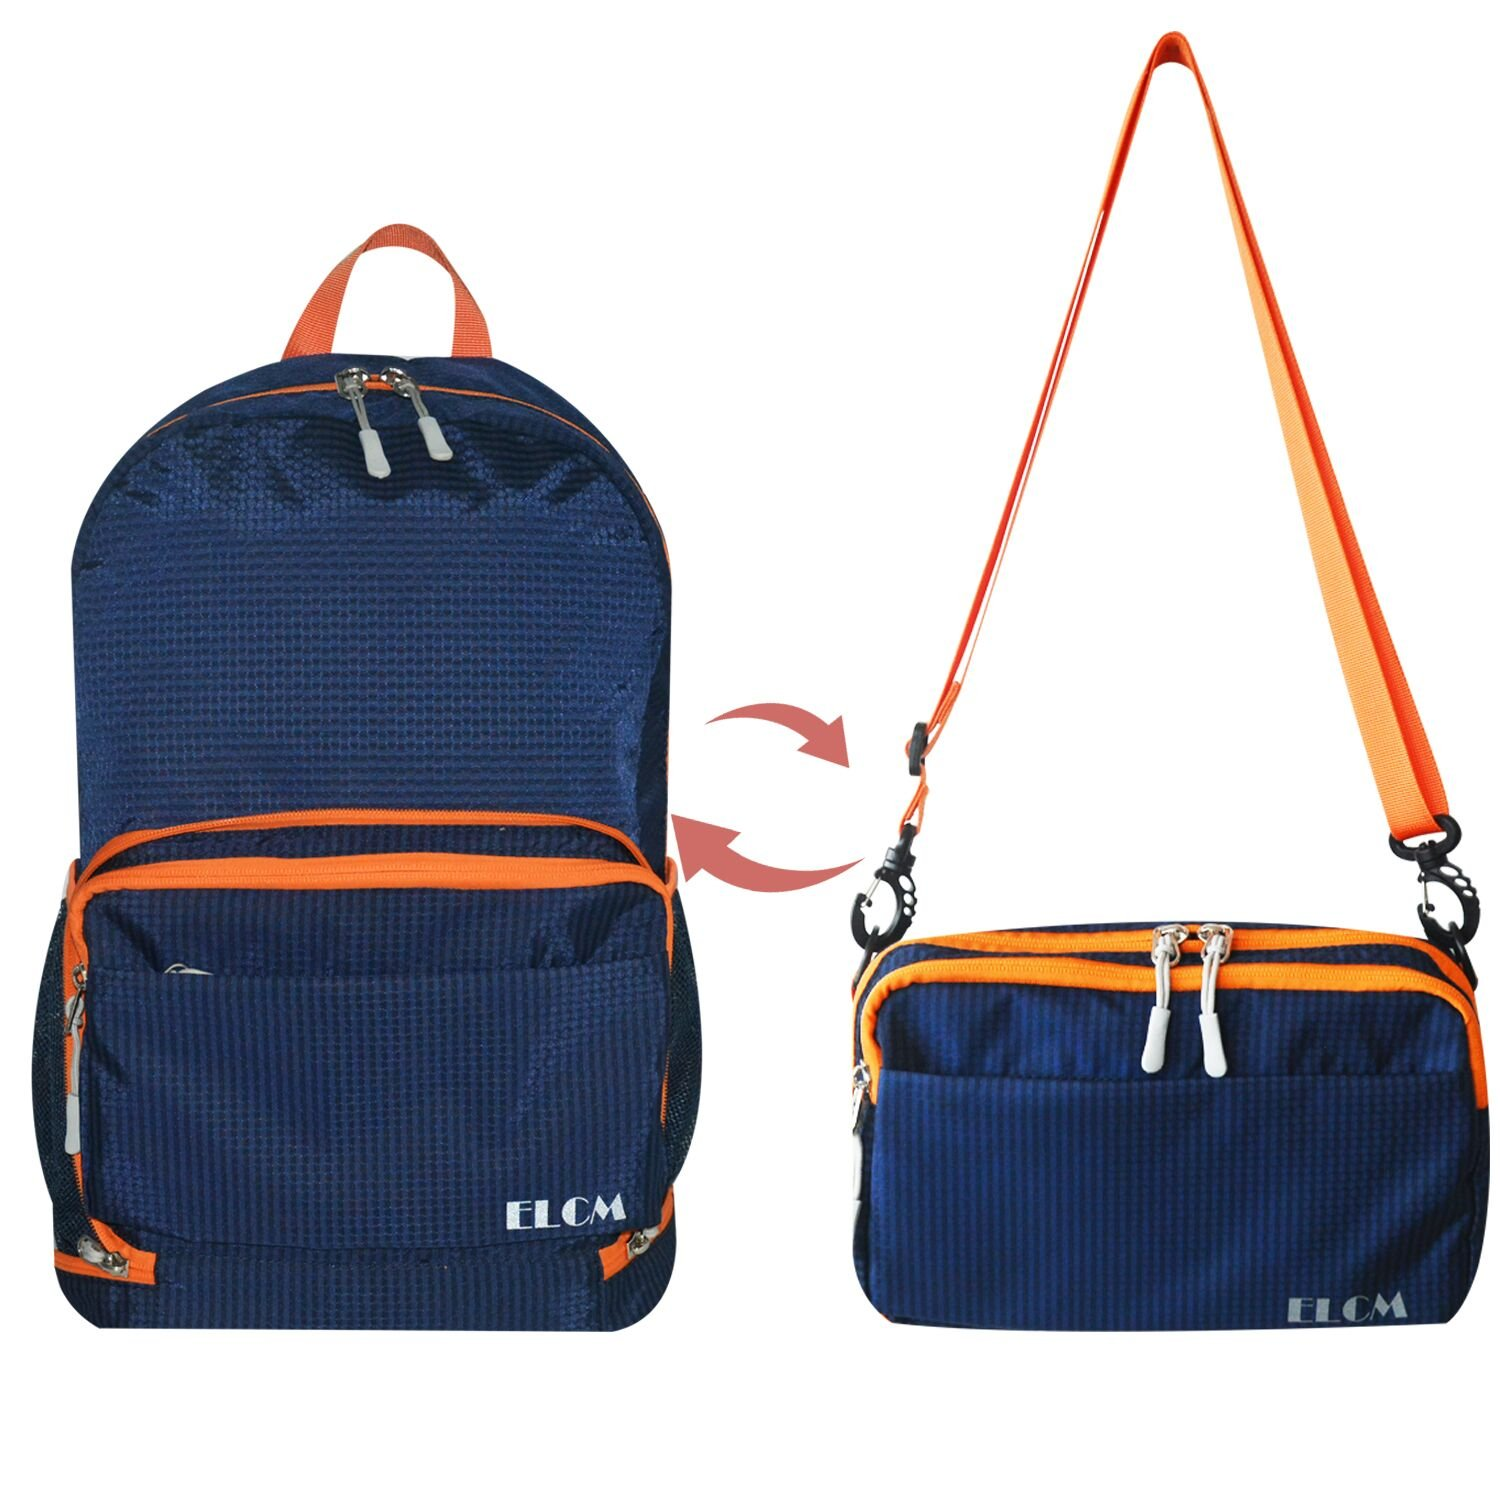 ... Leisure Sloping Bag, Suitable for Men and Women outlet. ELCM Foldable  and Packaged Multi-Purpose 25L Backpack Lightweight Water Resistant for  Outdoor ... 24b33cd01a